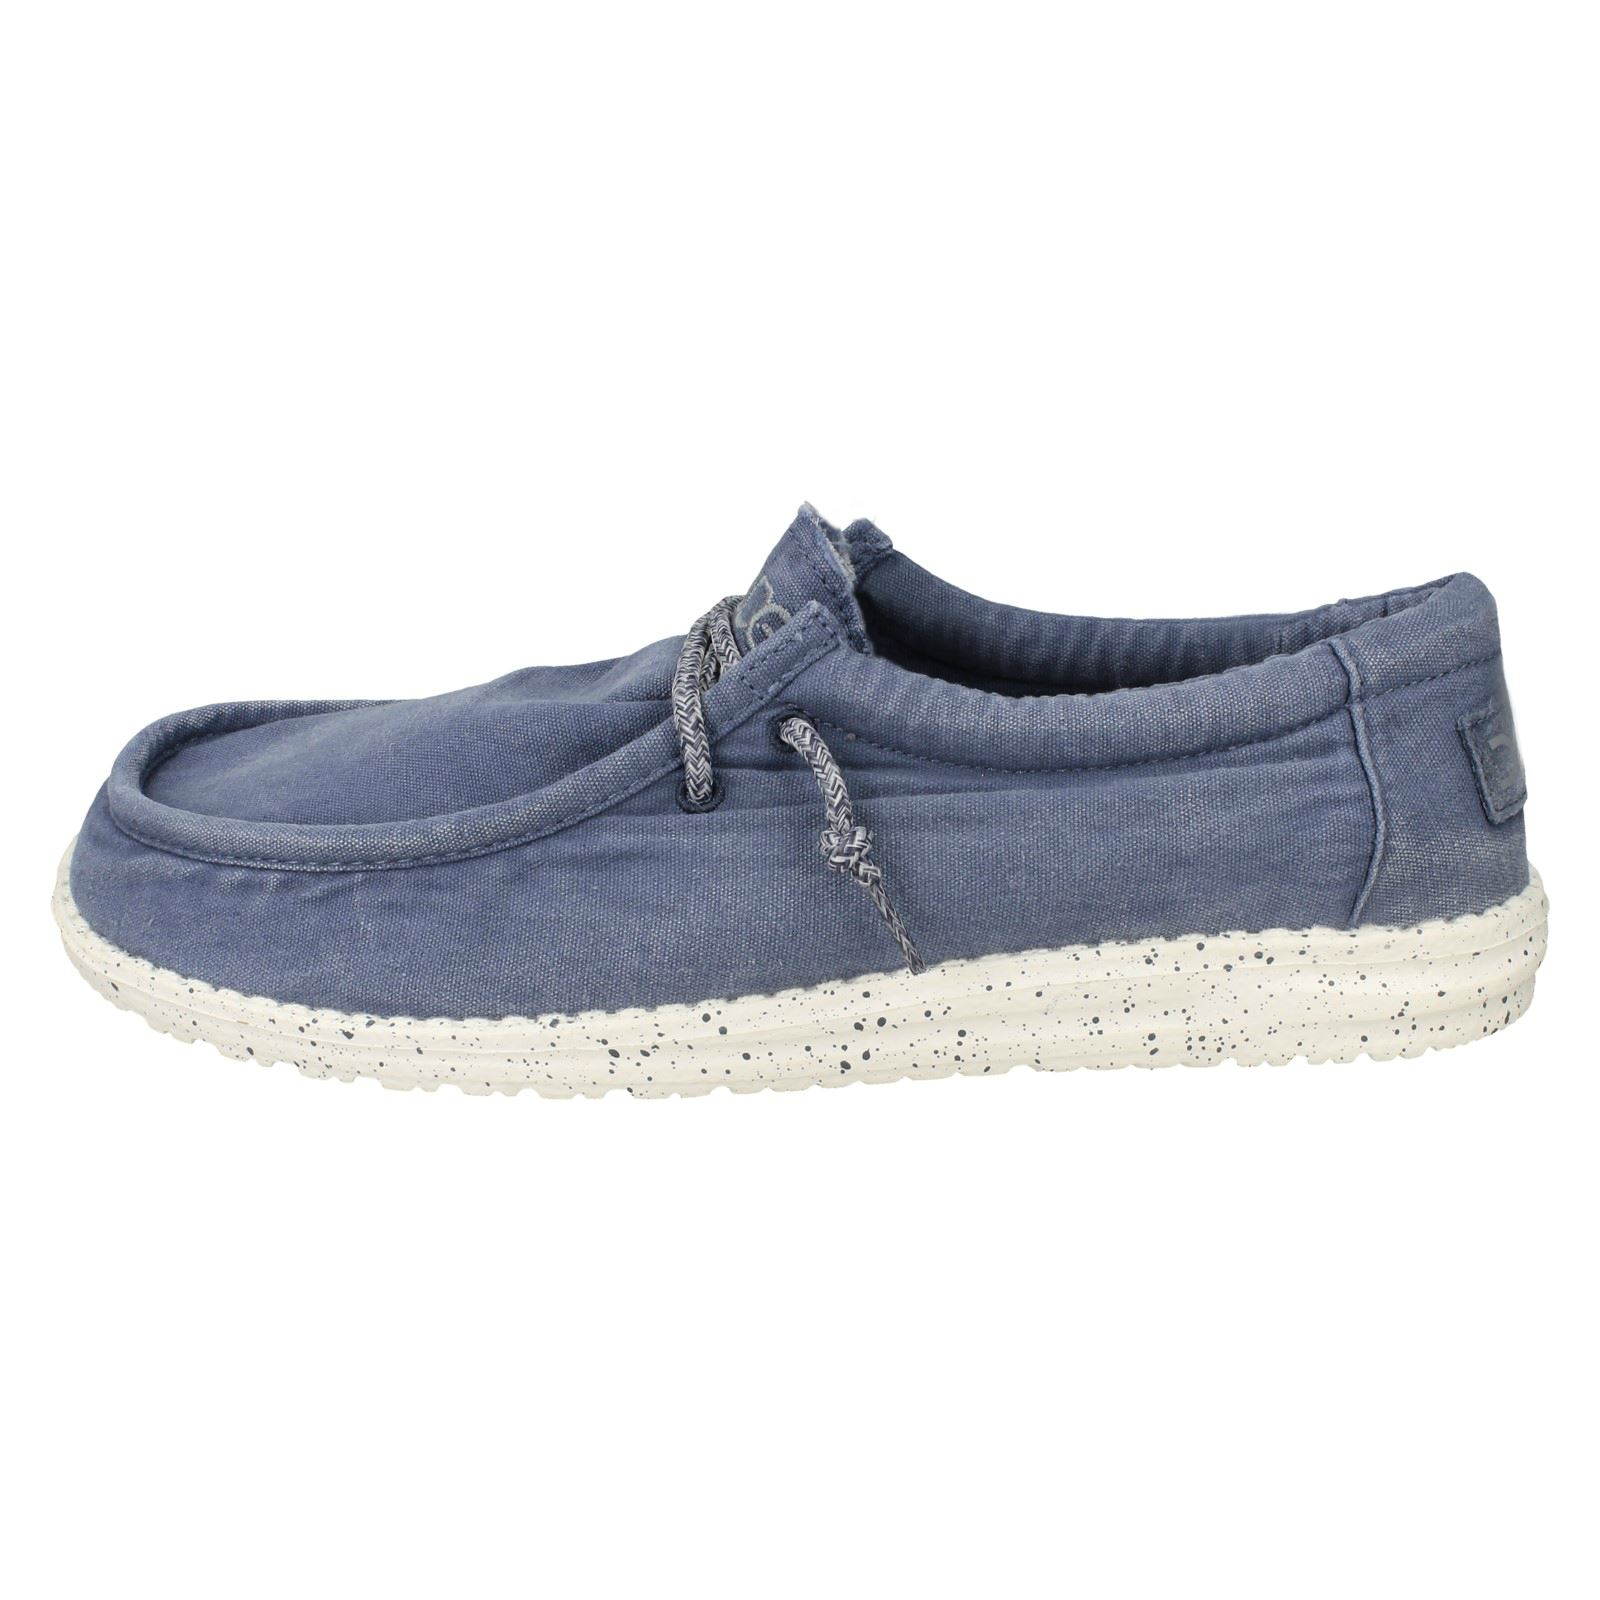 '  Herren Hey Washed Dude' Moccasin Schuhes - Wally Washed Hey 4a3163